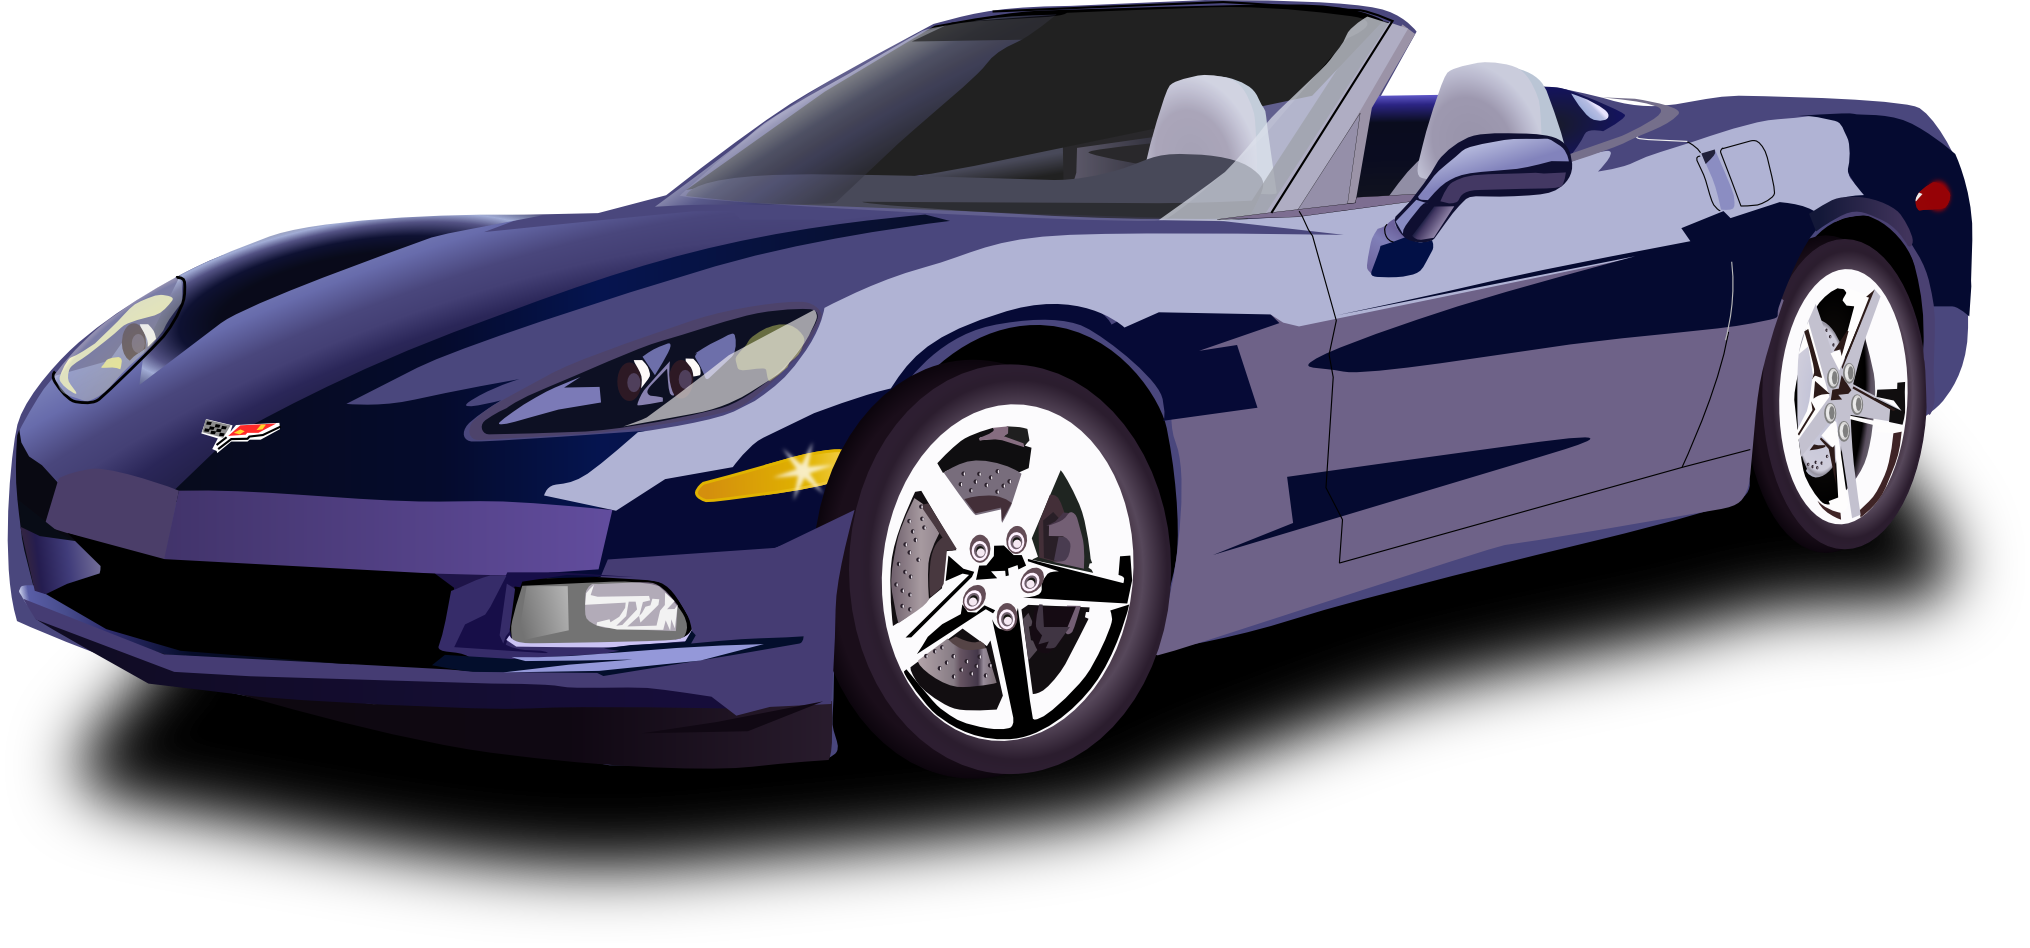 Fast car clipart transparent image royalty free library Sports Car PNG Transparent Images | PNG All image royalty free library